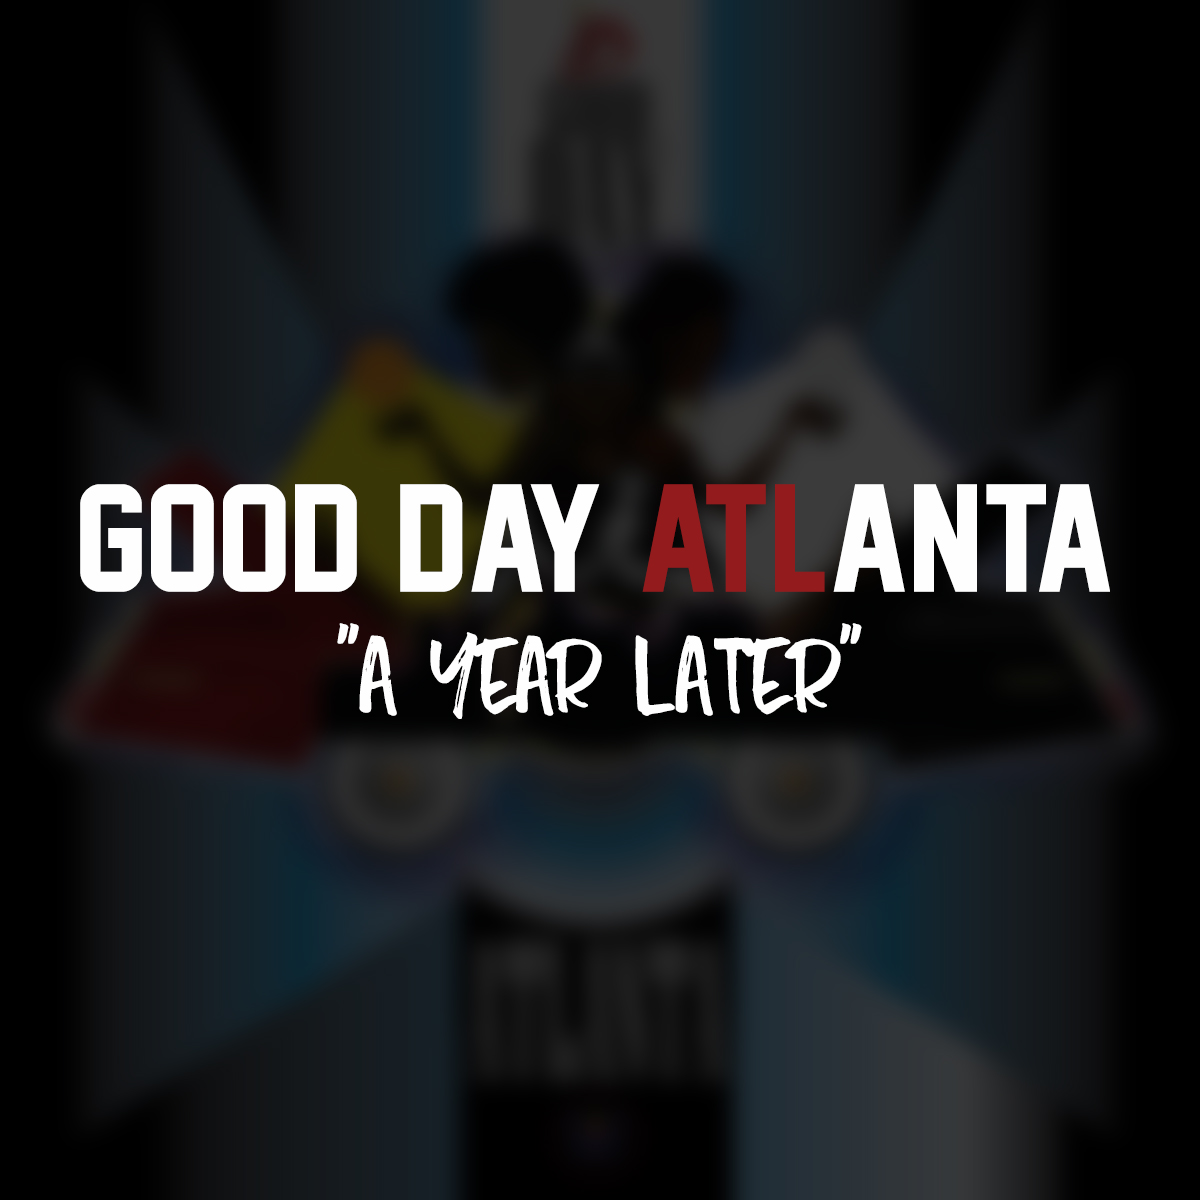 Good Day Atlanta A Year Later